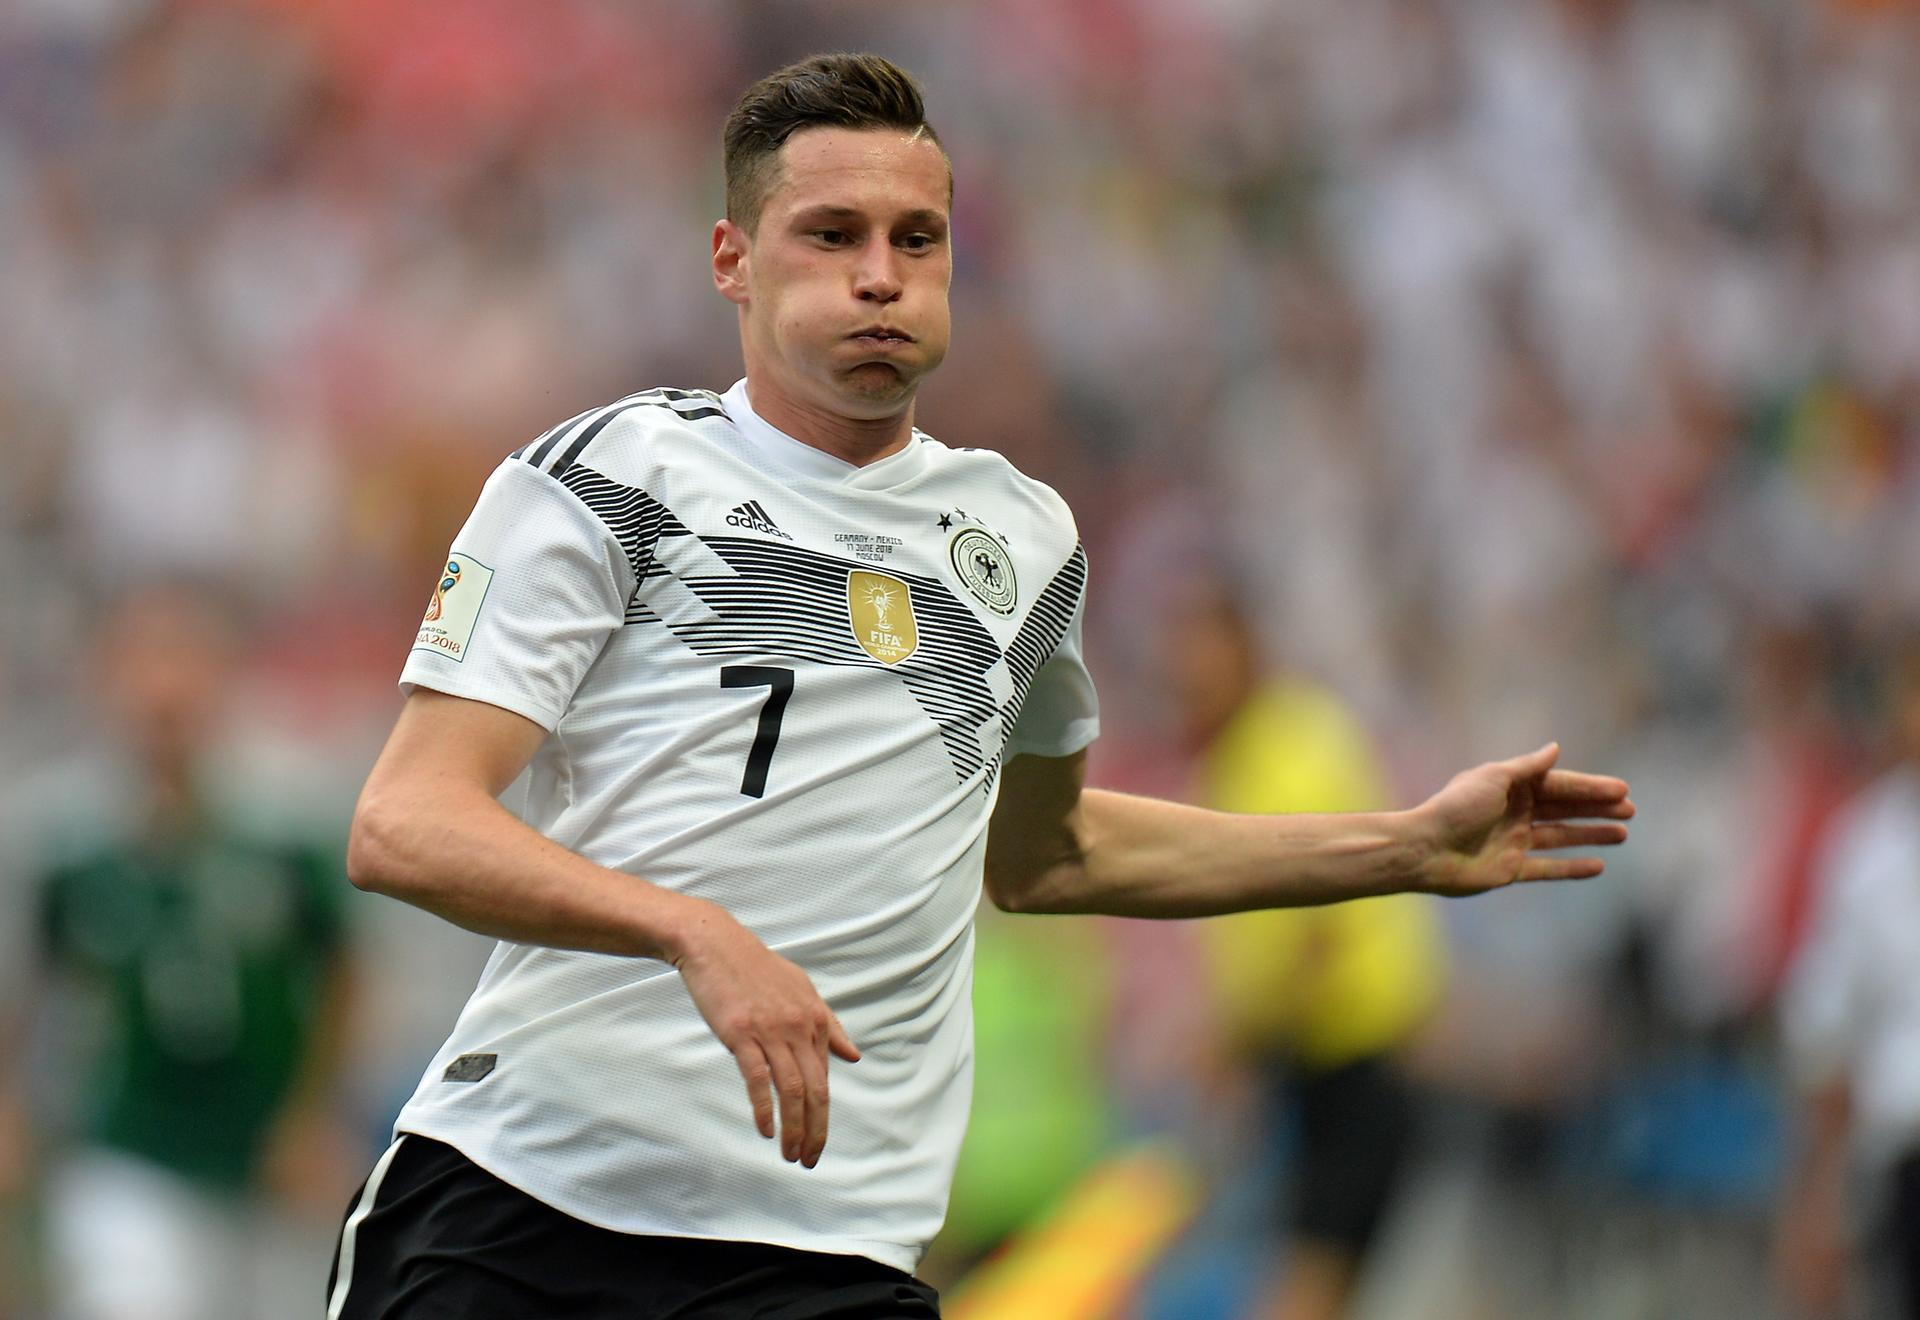 Julian Draxler Gives Himself A Spritz Of Scent Before